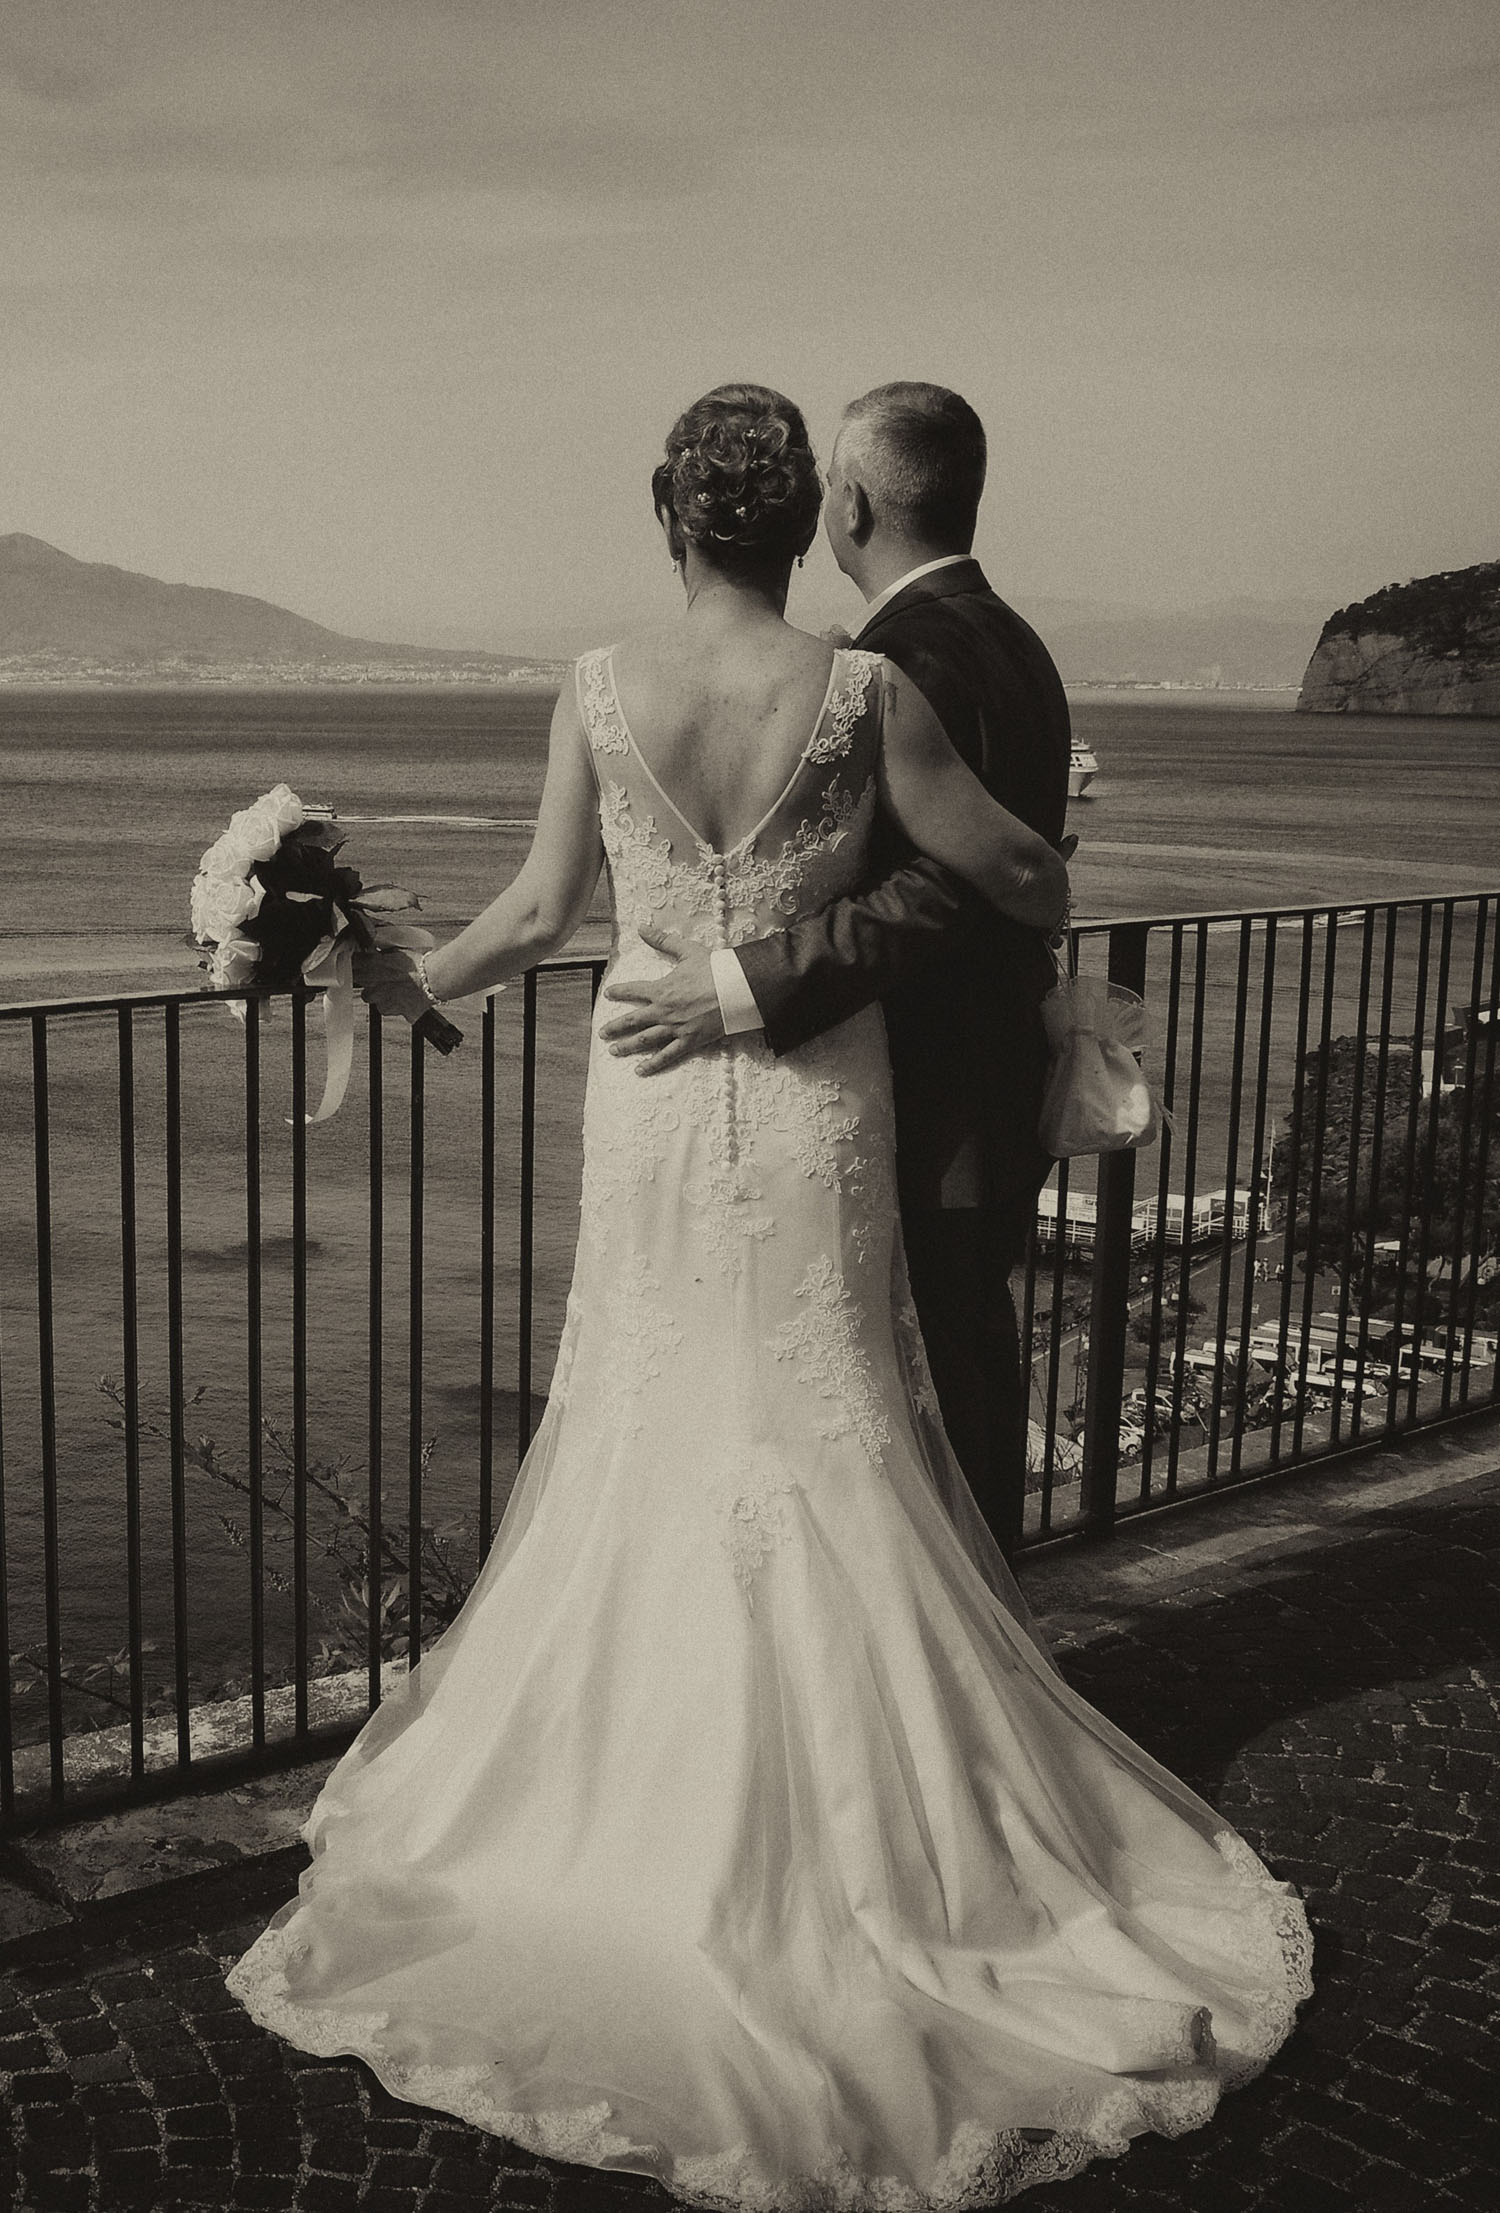 Bride and Groom standing by some iron railings overlooking the sea in Sorrento Italy.